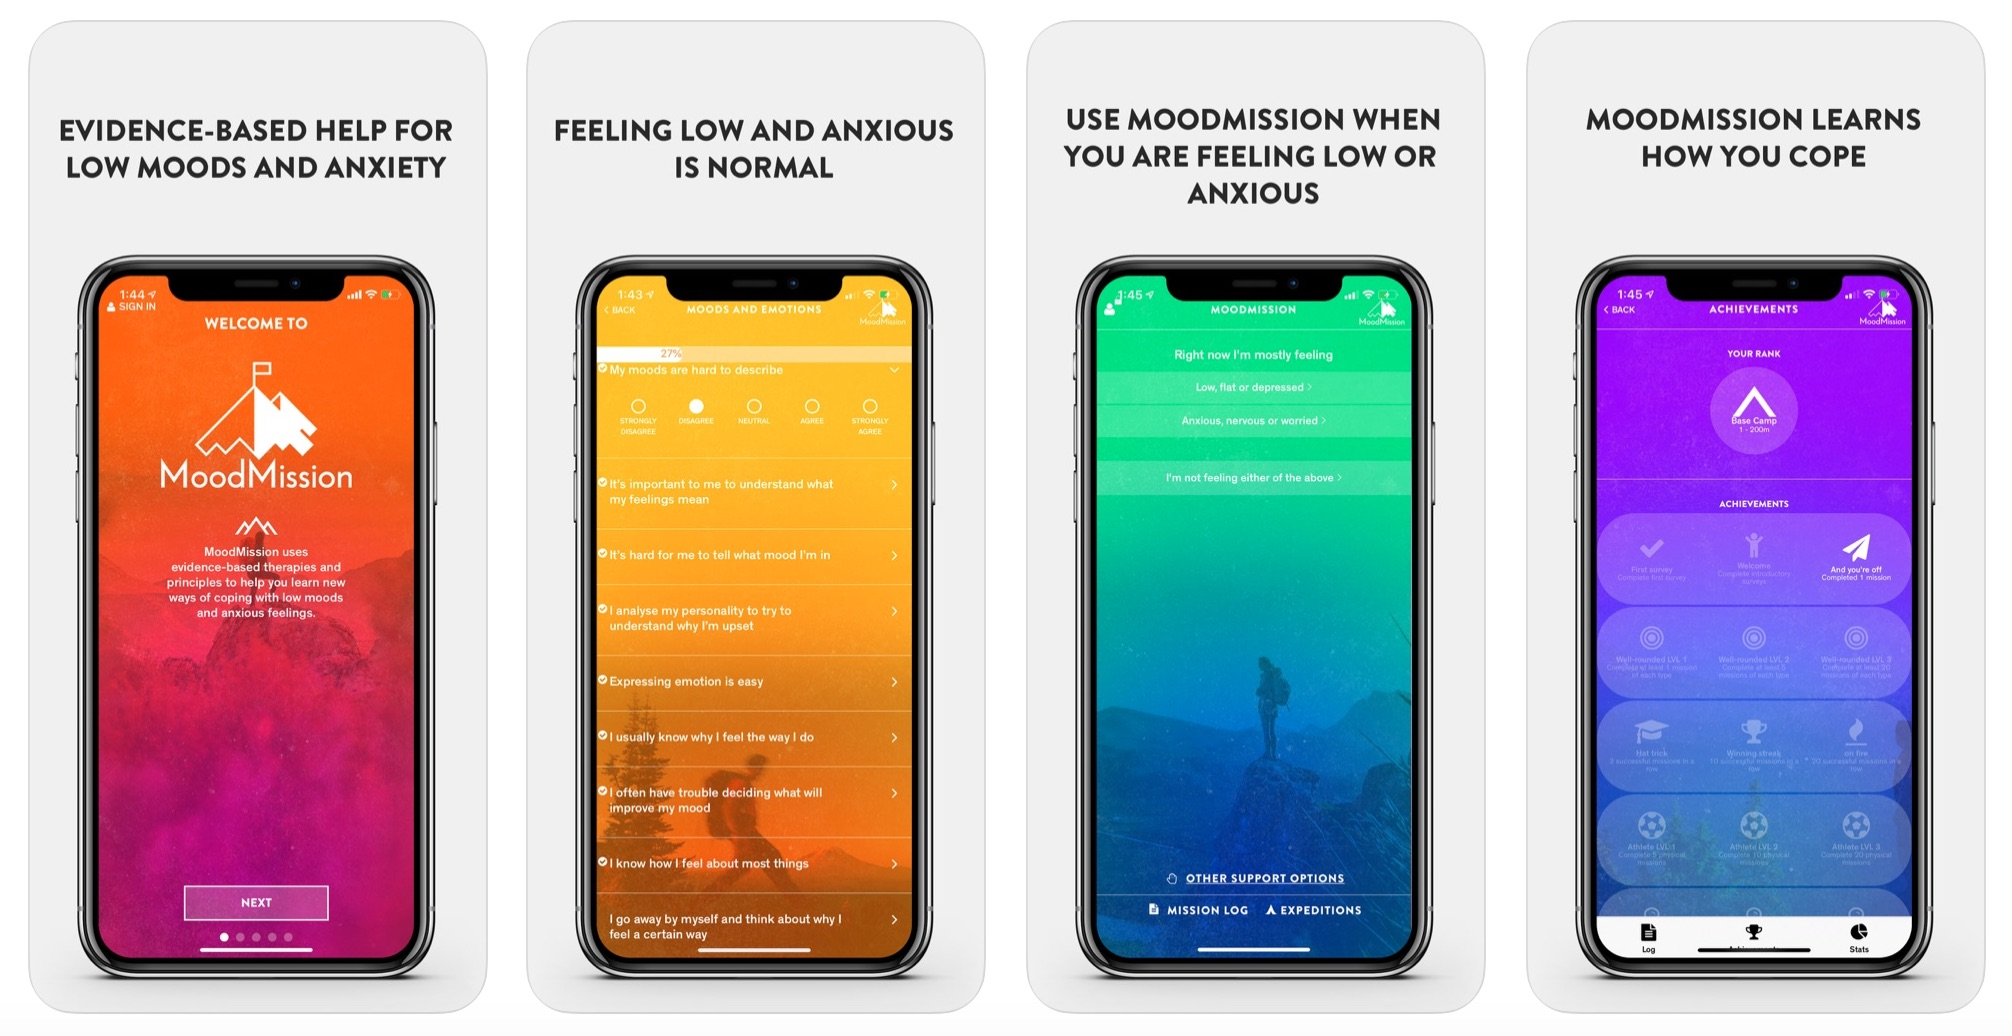 moodmission app for iphone and andriod to reduce stress and anxiety